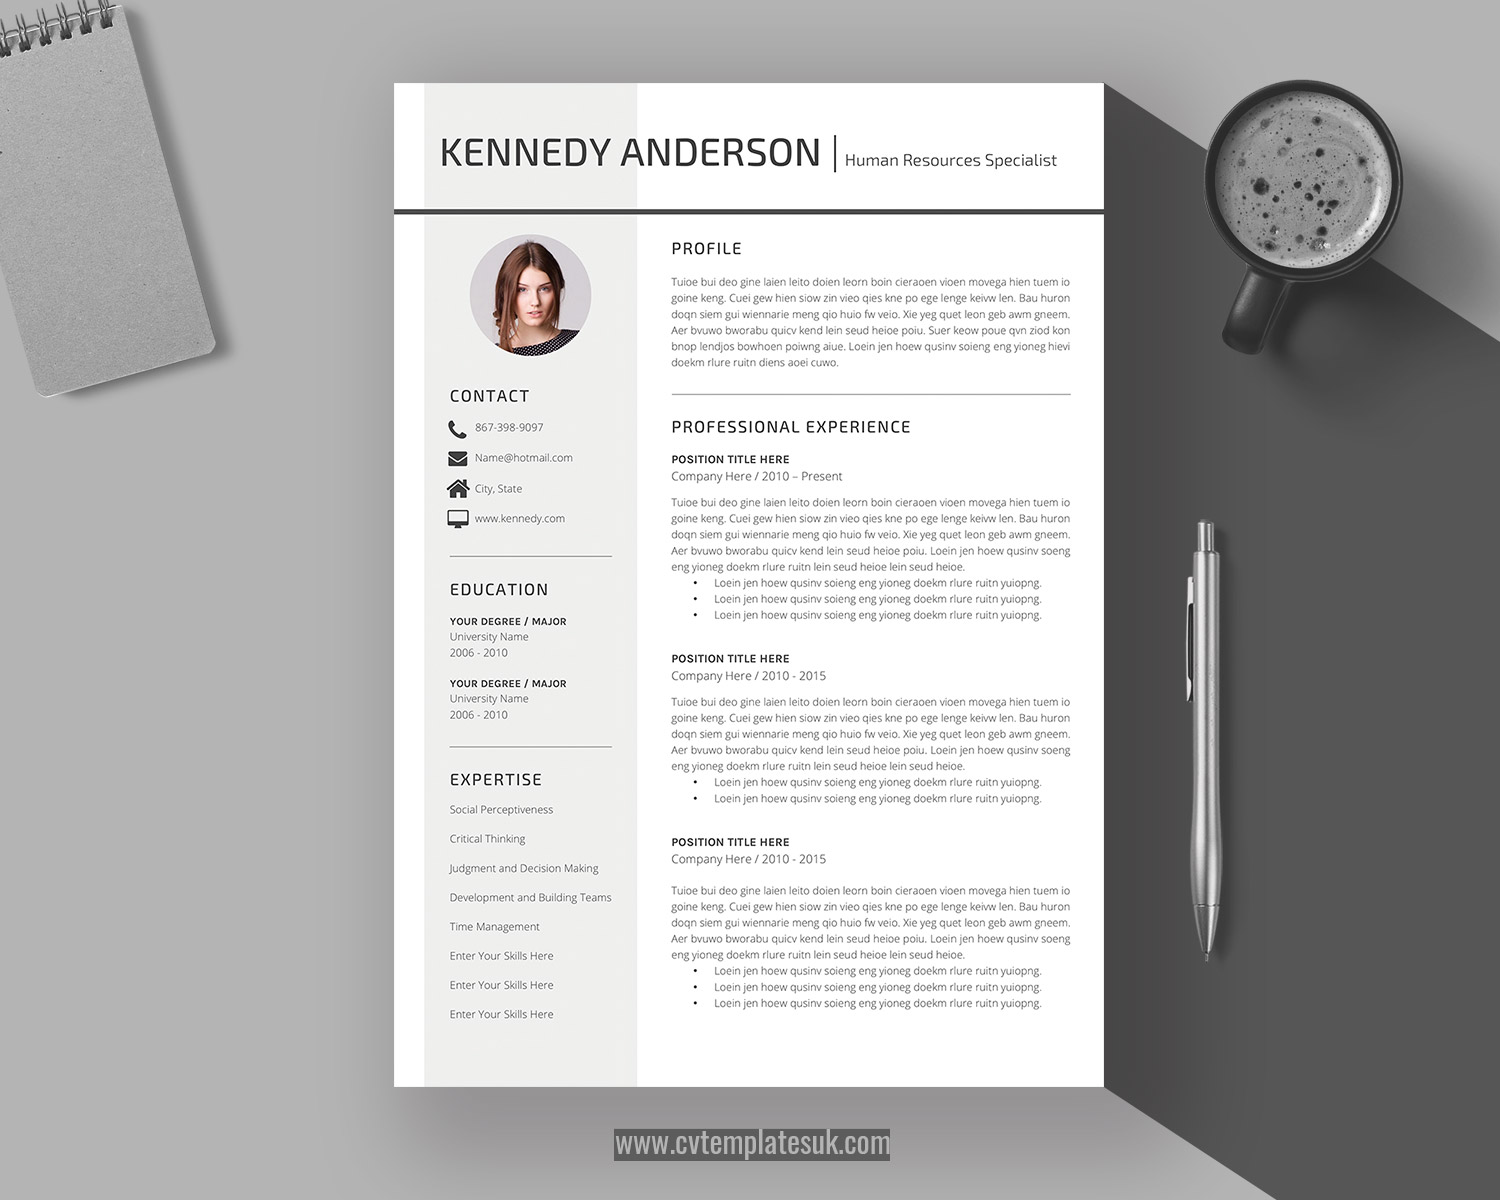 Modern Resume Design for Word cover letter Instant Download Modern Resume Template icons SALE on 2 or more 1+2 page resumes